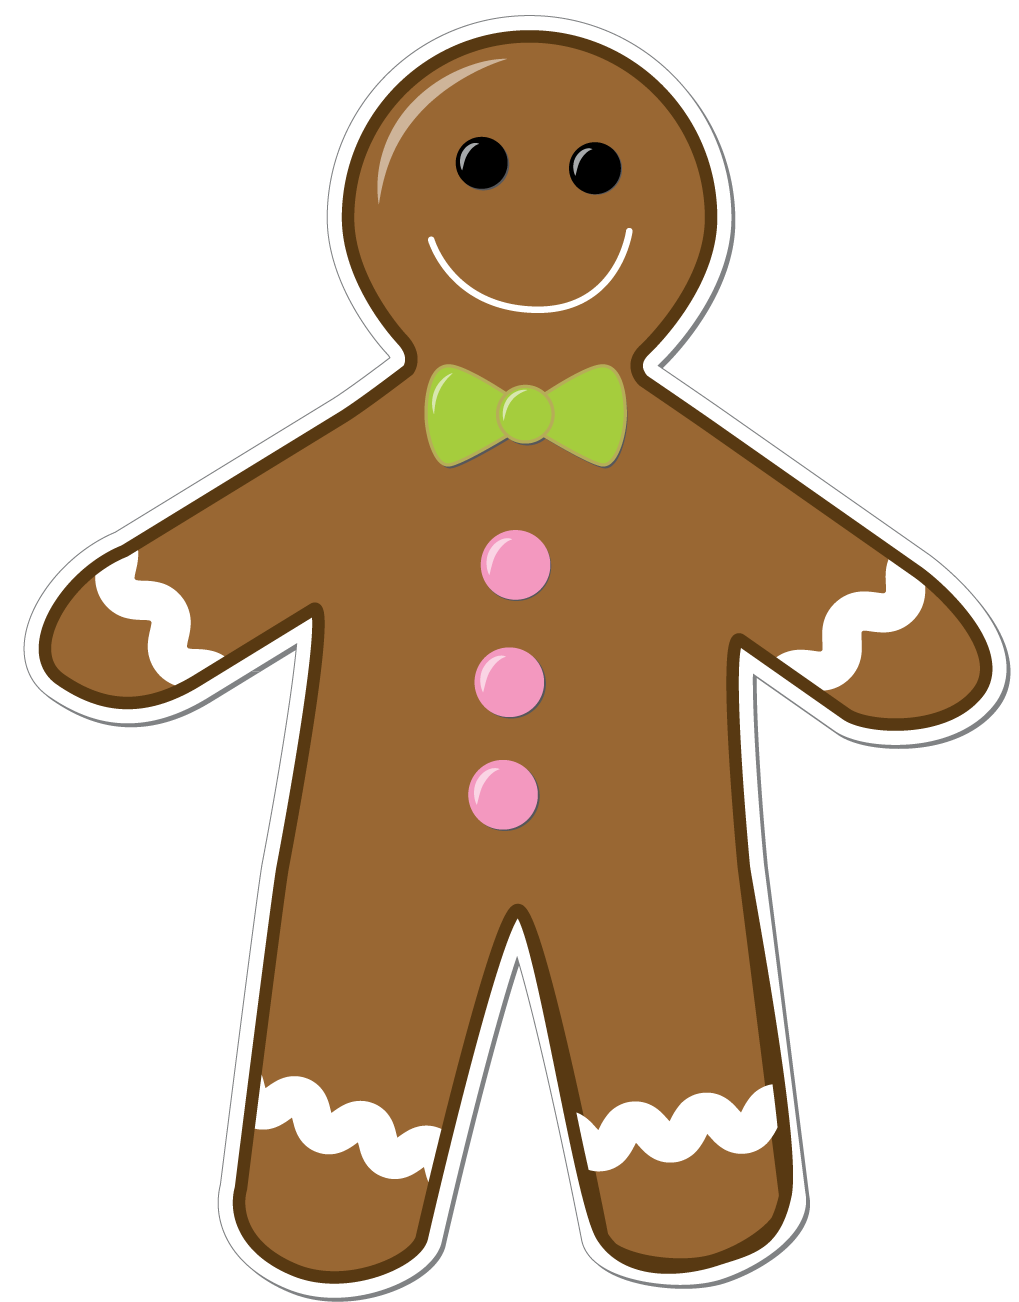 Clip Art Gingerbread Man Clip Art gingerbread man border clipart kid displaying 18 images for border